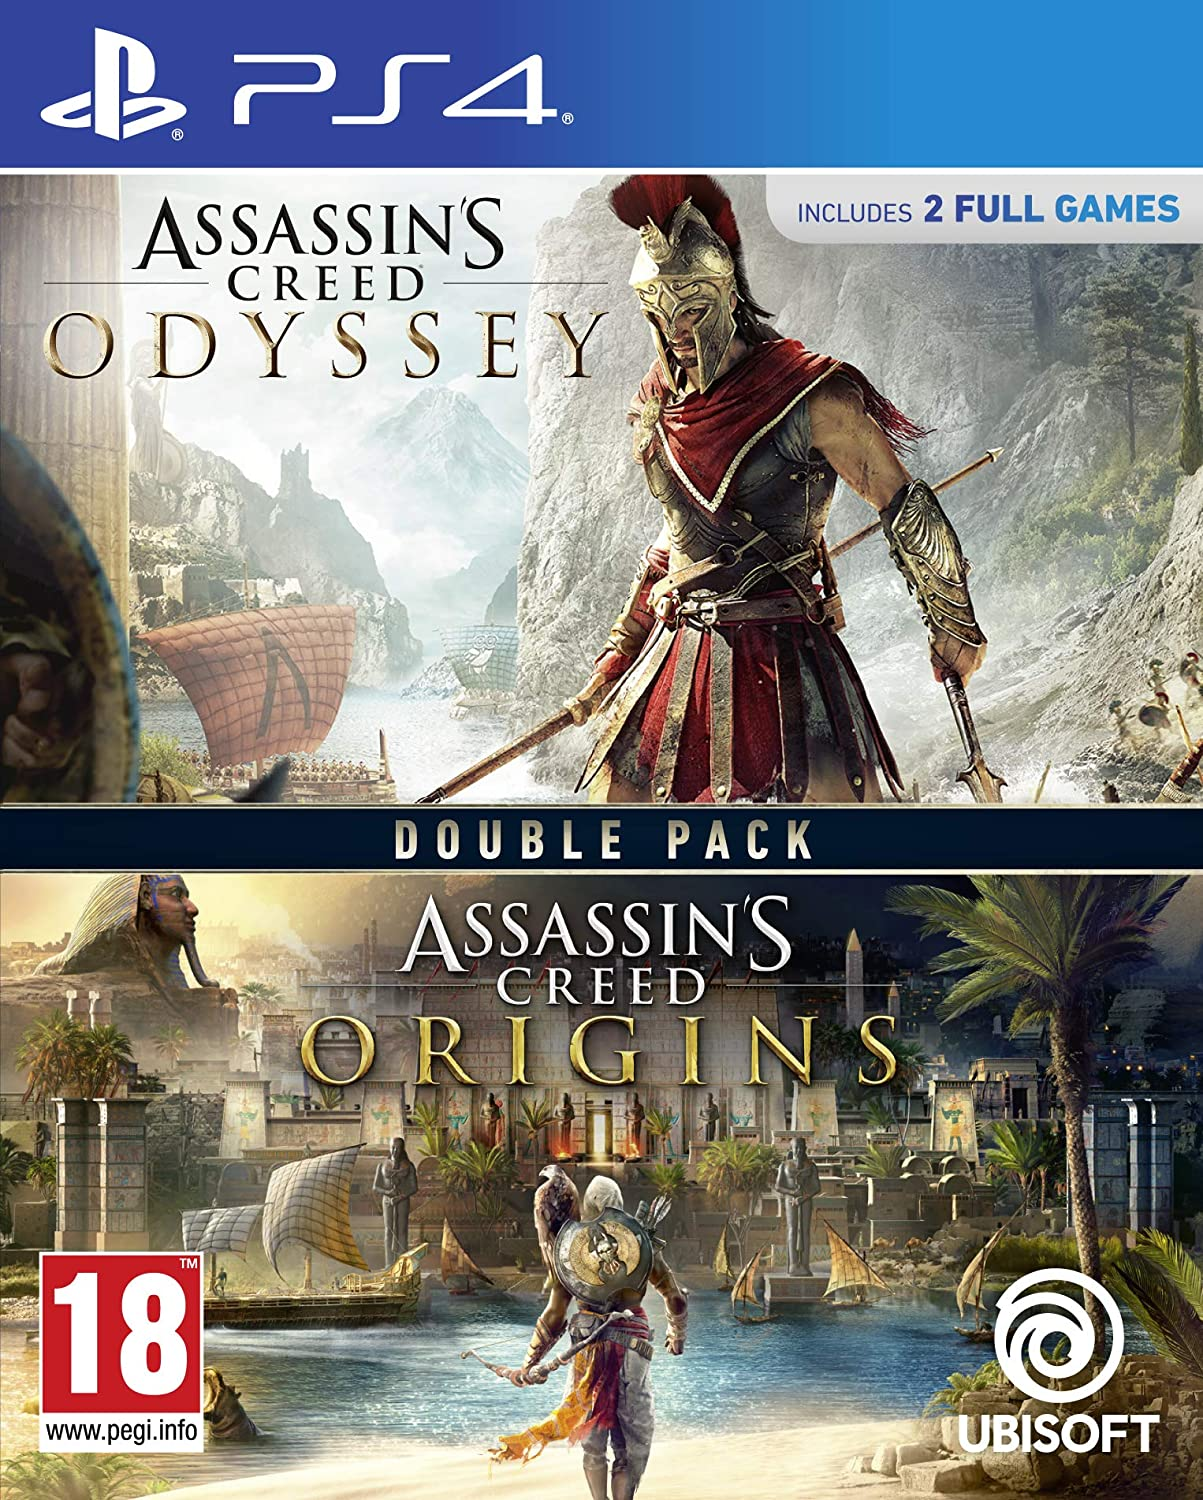 Assassins Creed Origins + Odyssey Pack